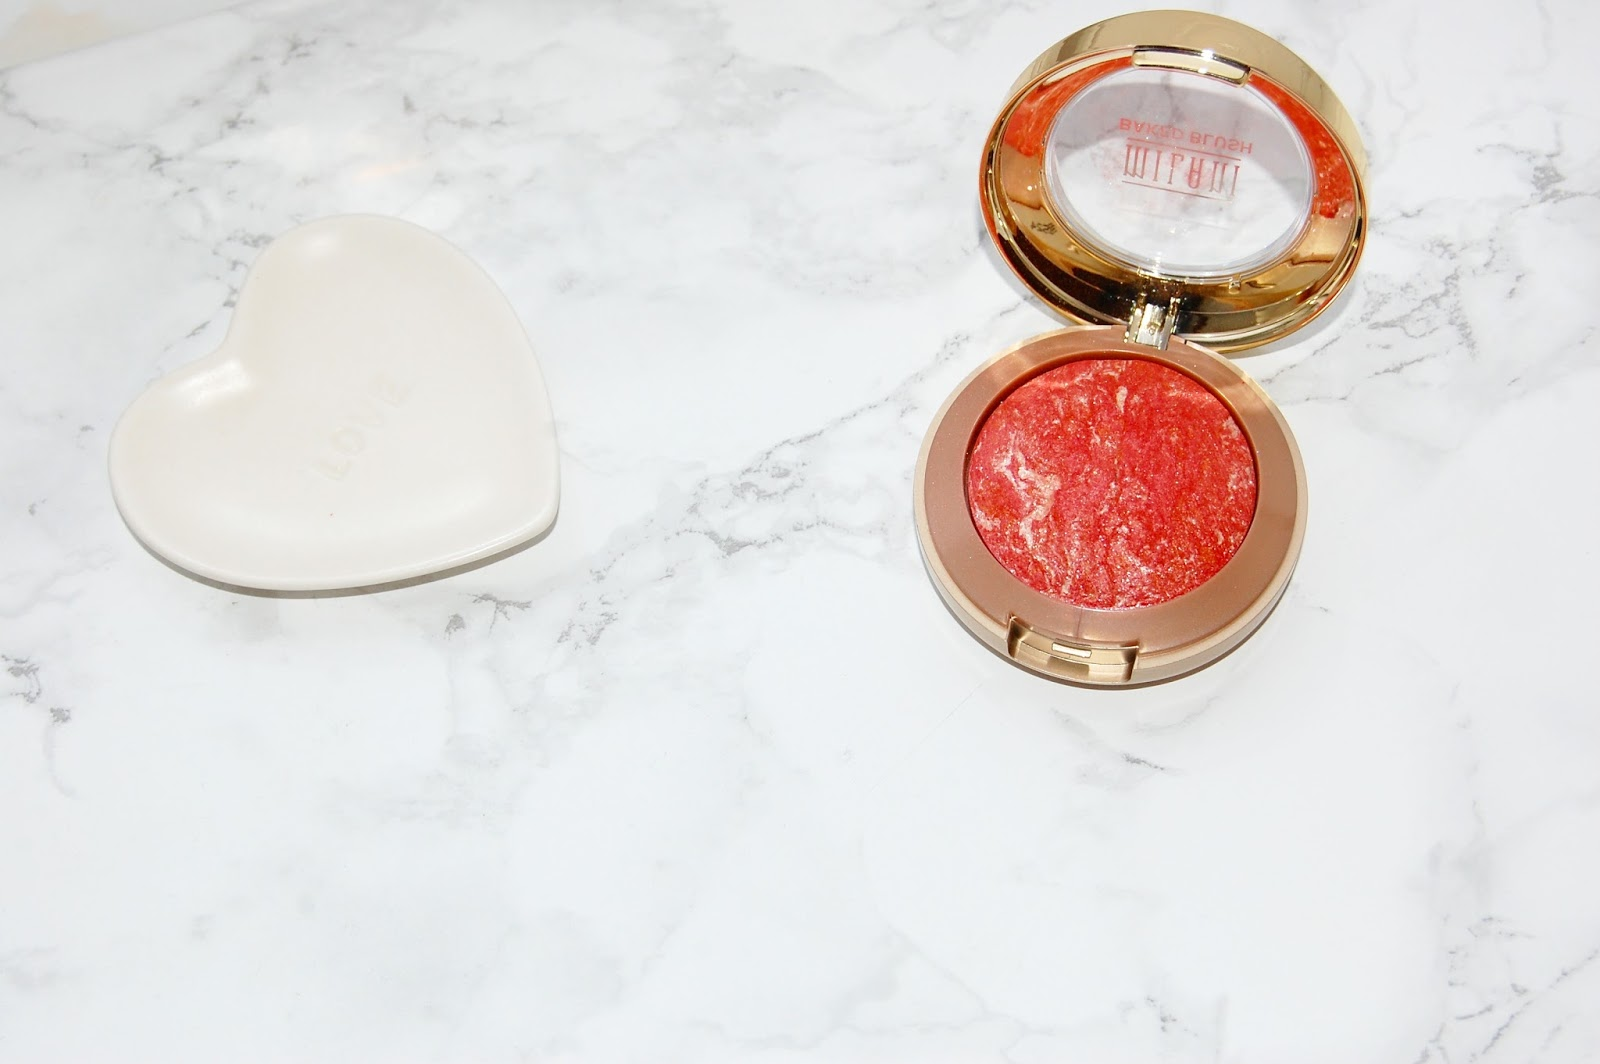 See my review of Milani Baked Blush in Corallina